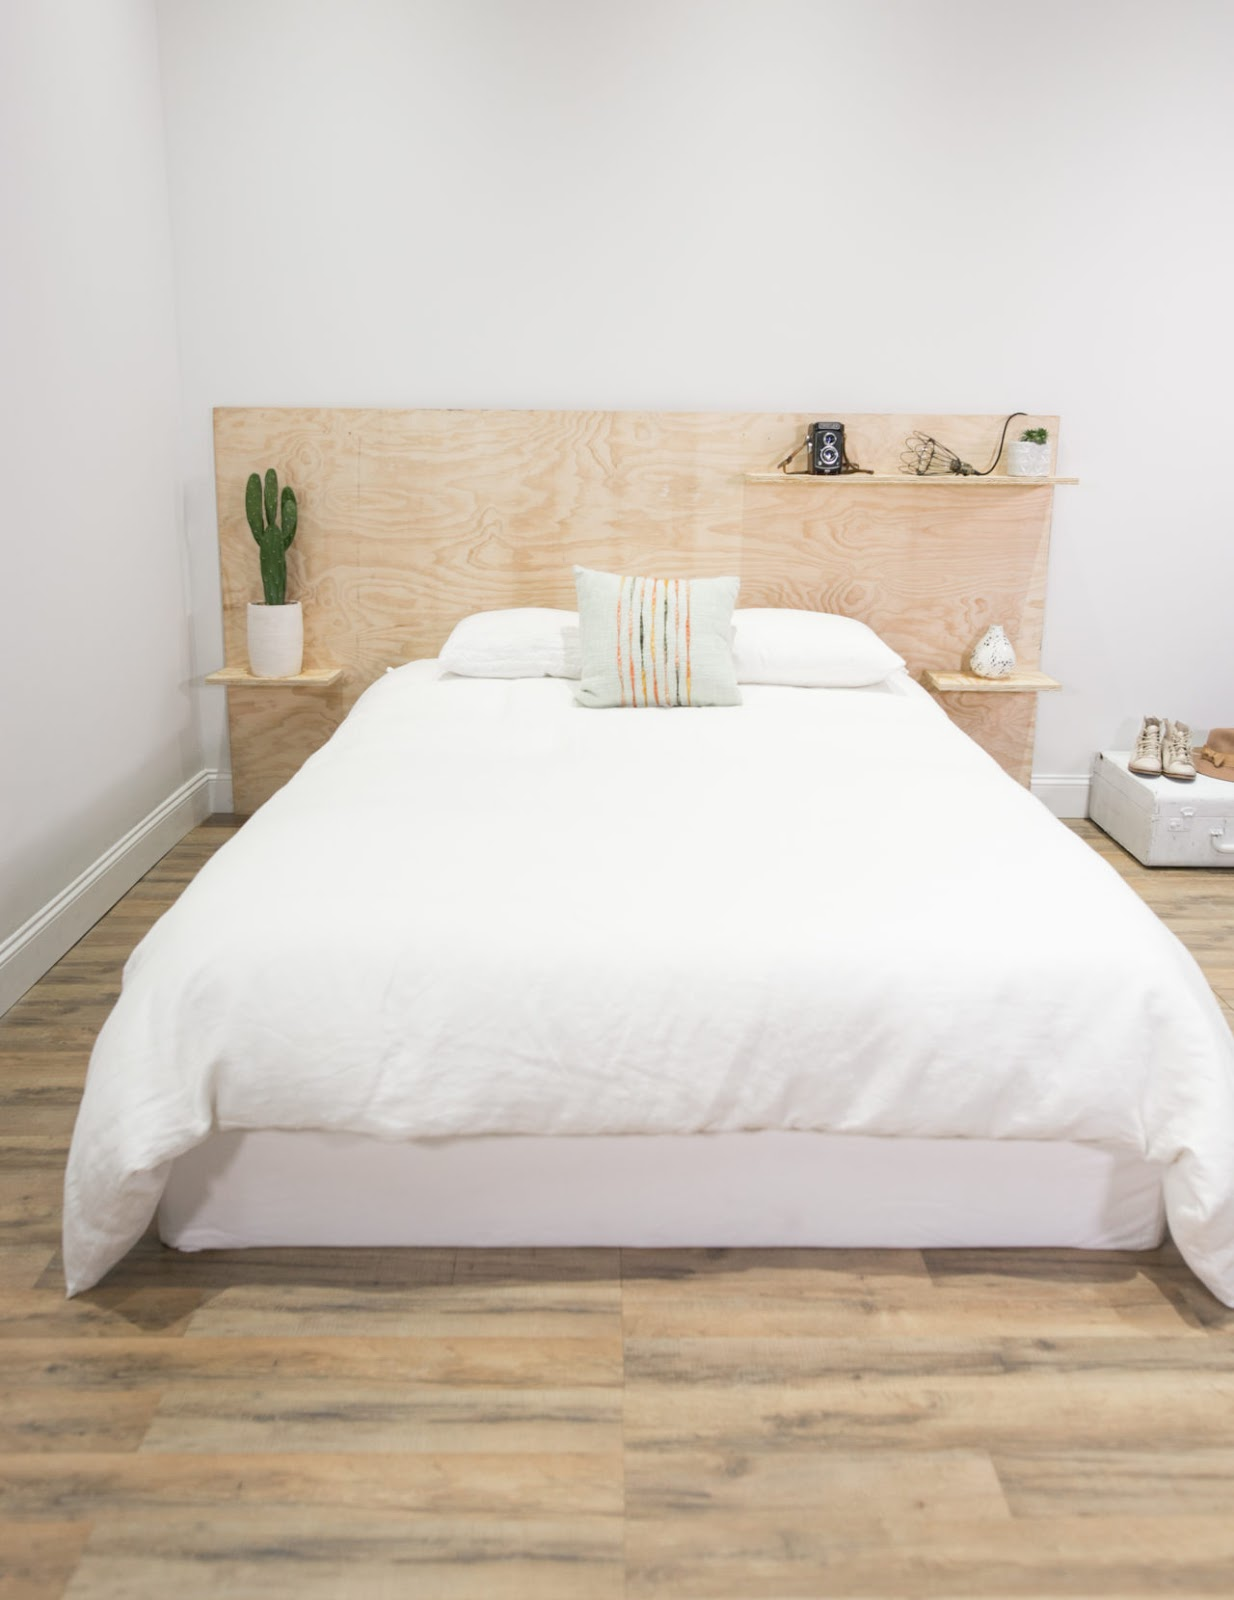 8 Plywood Headboard + Bed DIY Ideas | Poppytalk